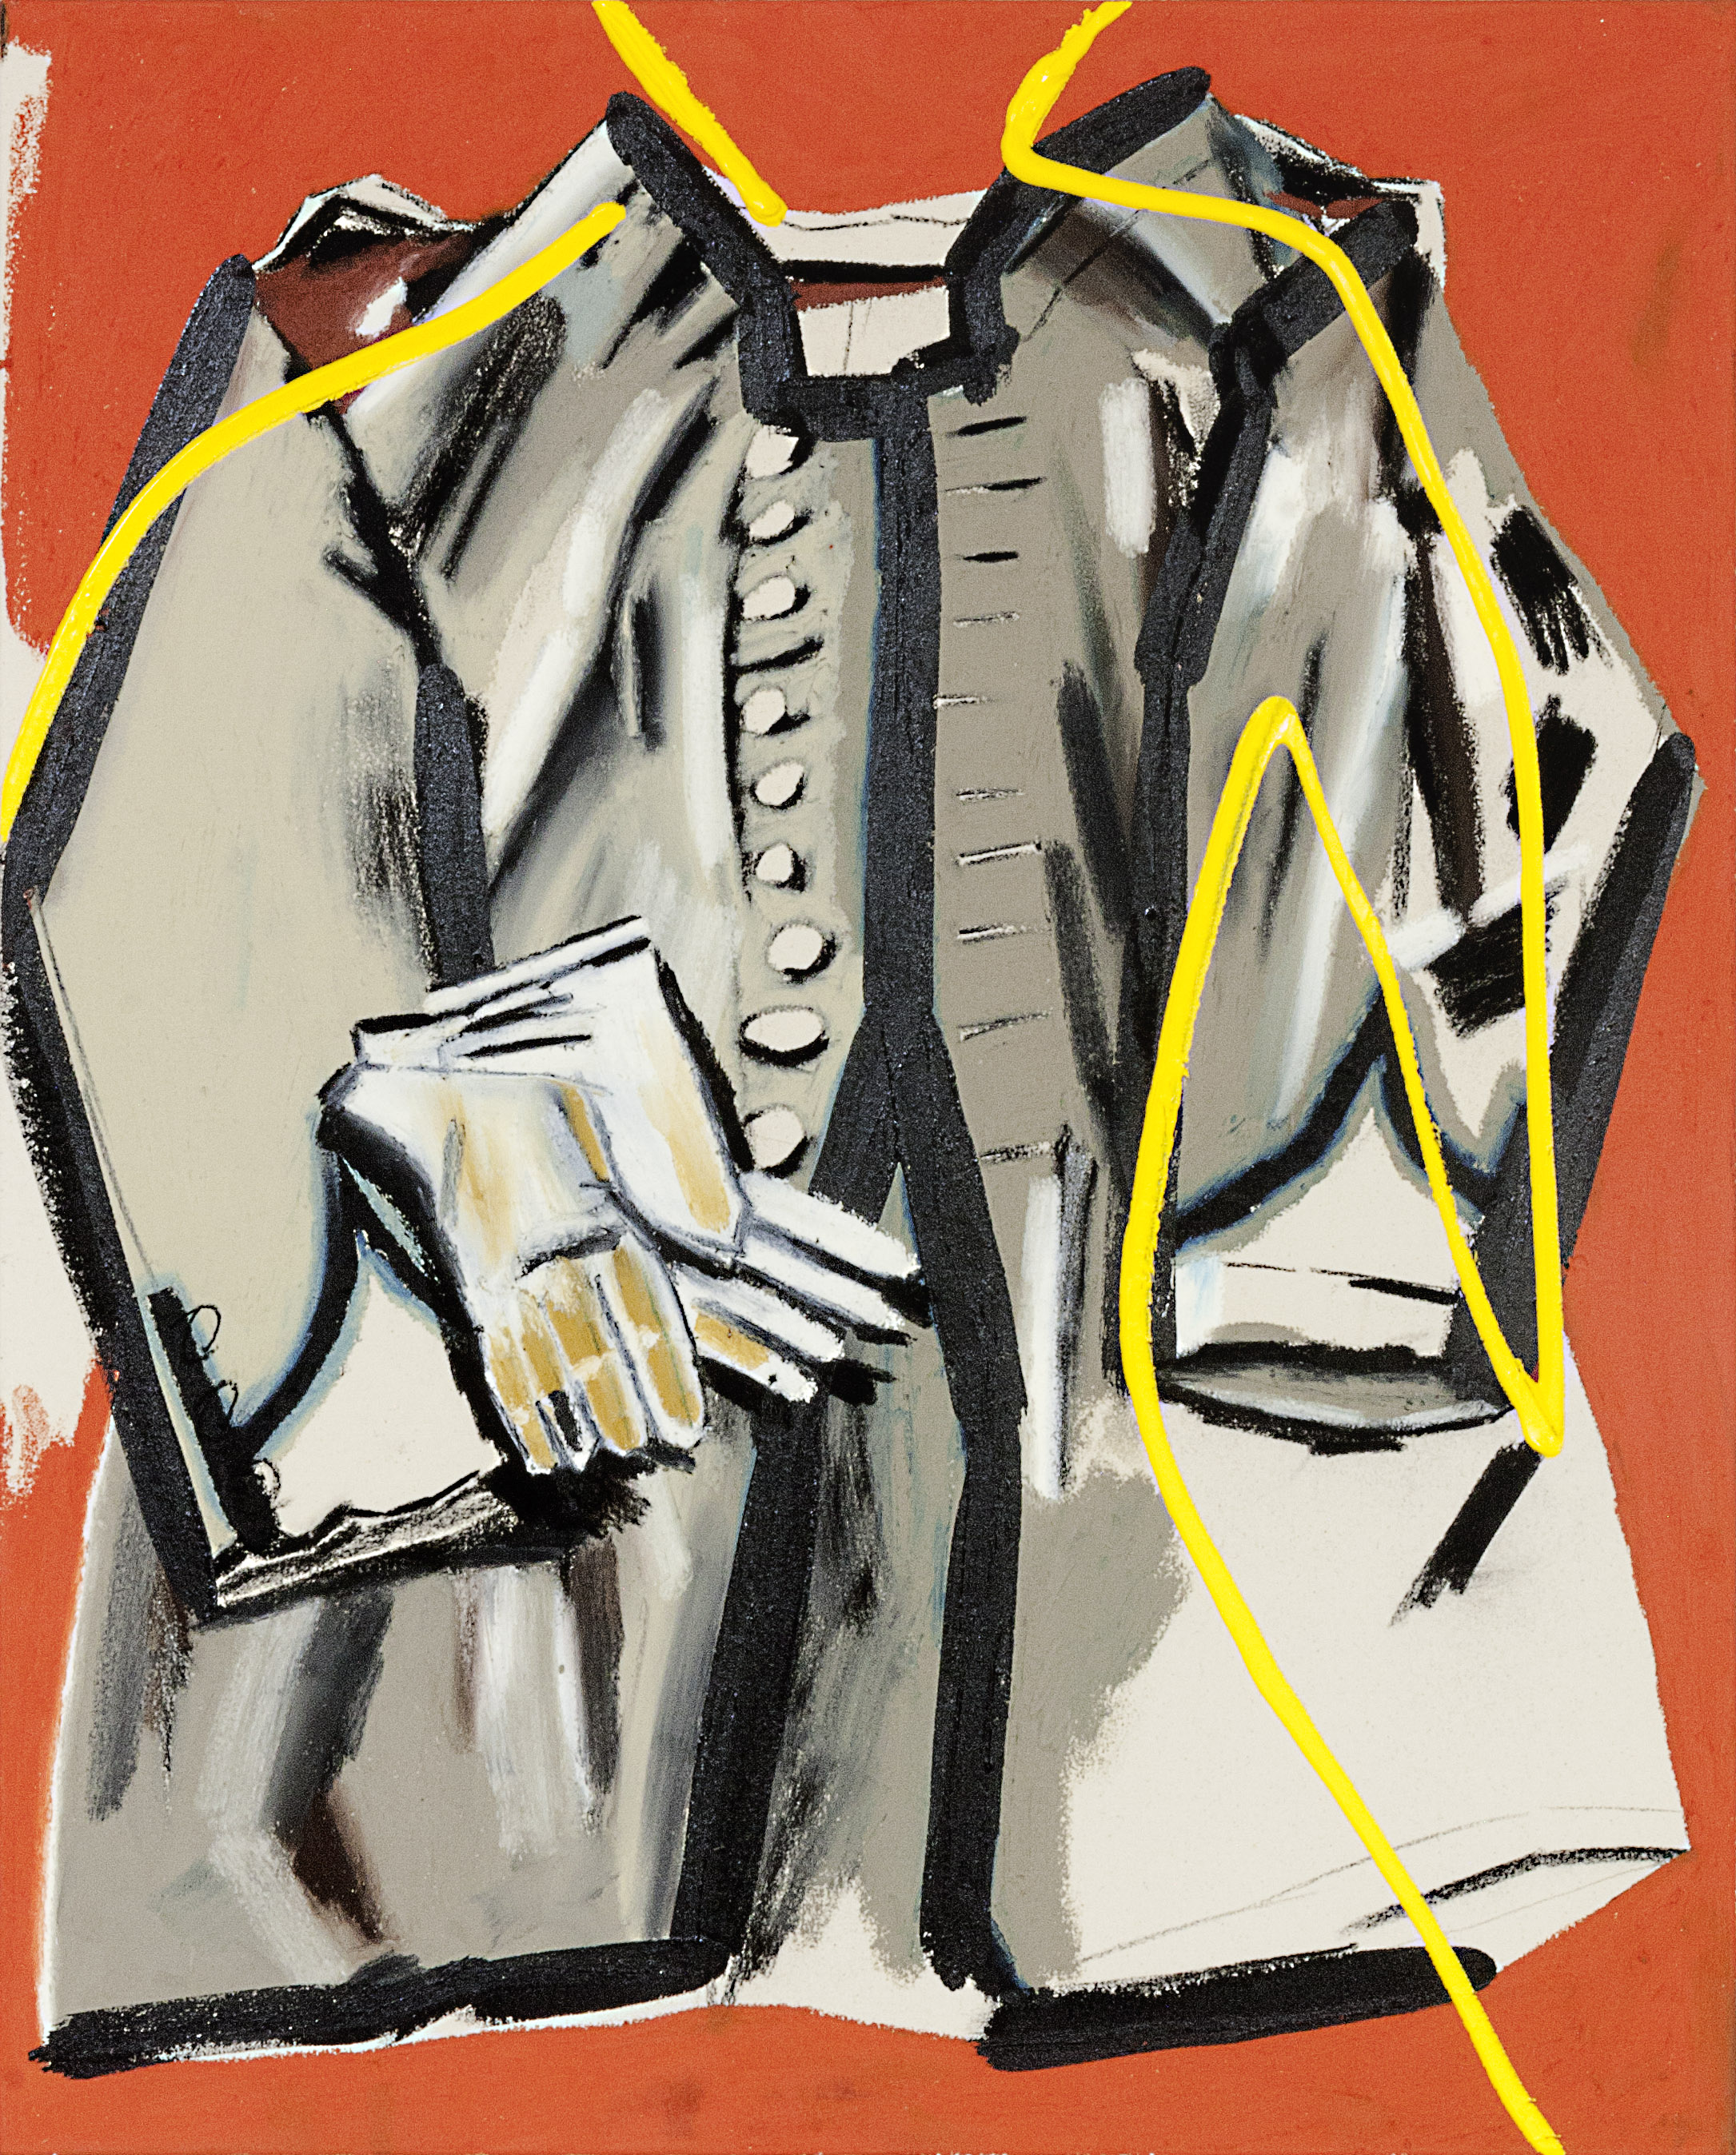 Nine-button frock coat and white cotton gloves 36 x 29 inches oil stick, acrylic and charcoal on canvas 2018